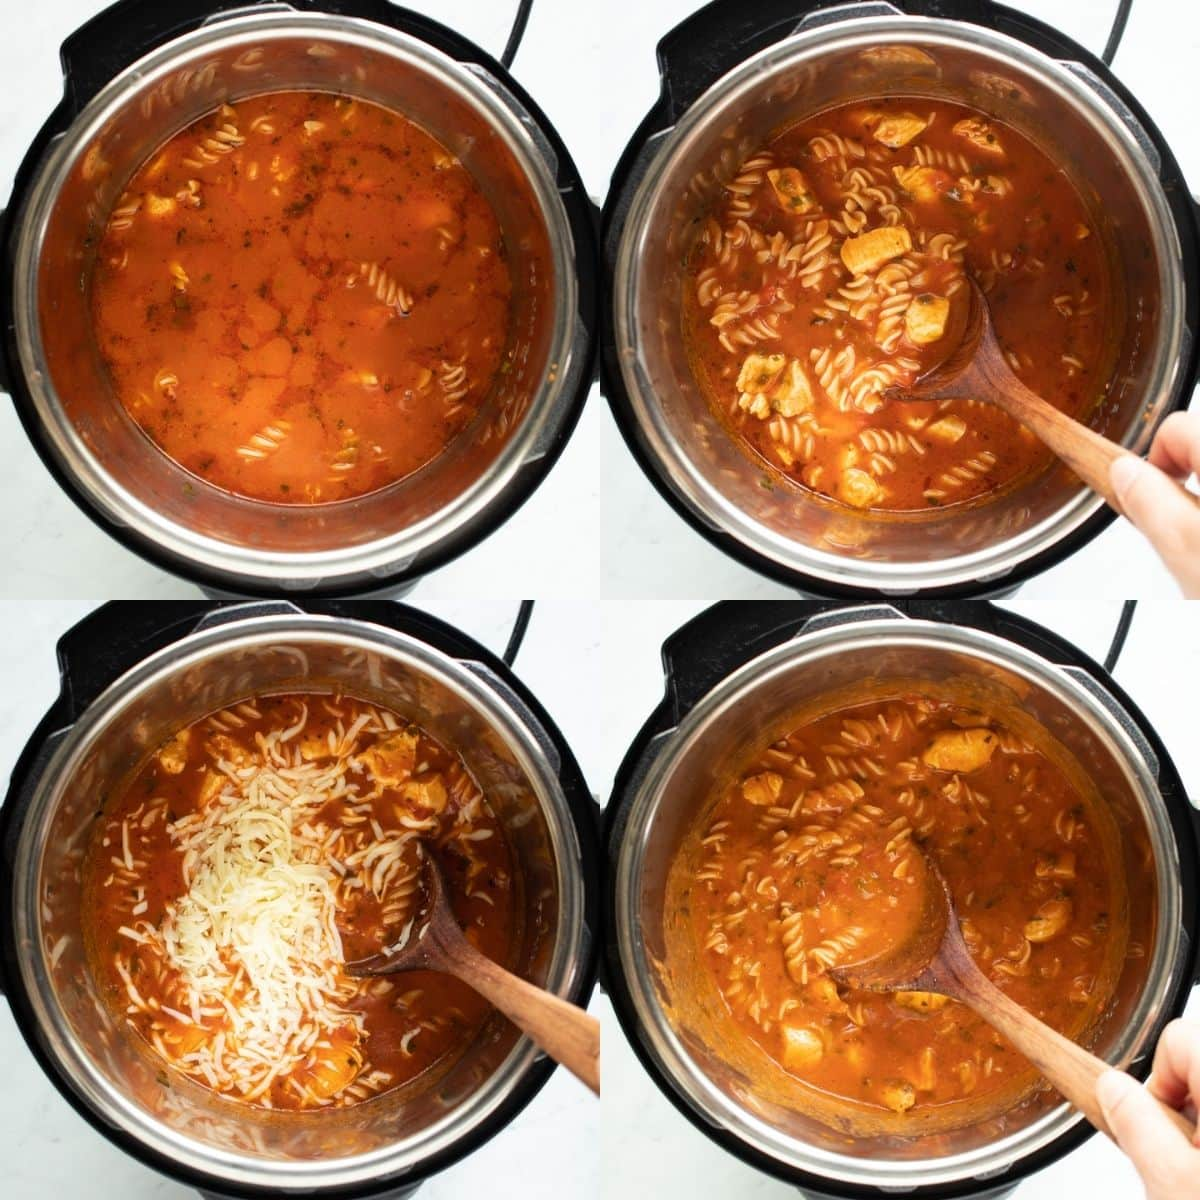 Four pictures showing the cooked tomato-basil pasta in the Instant Pot. The first is right after cooking. It's kind of liquidy. The second is the mixture being stirred to help start the thickening process. The third is mozzarella cheese being added. The fourth is the thickened pasta after heating for 10-15 minutes in the Instant Pot.